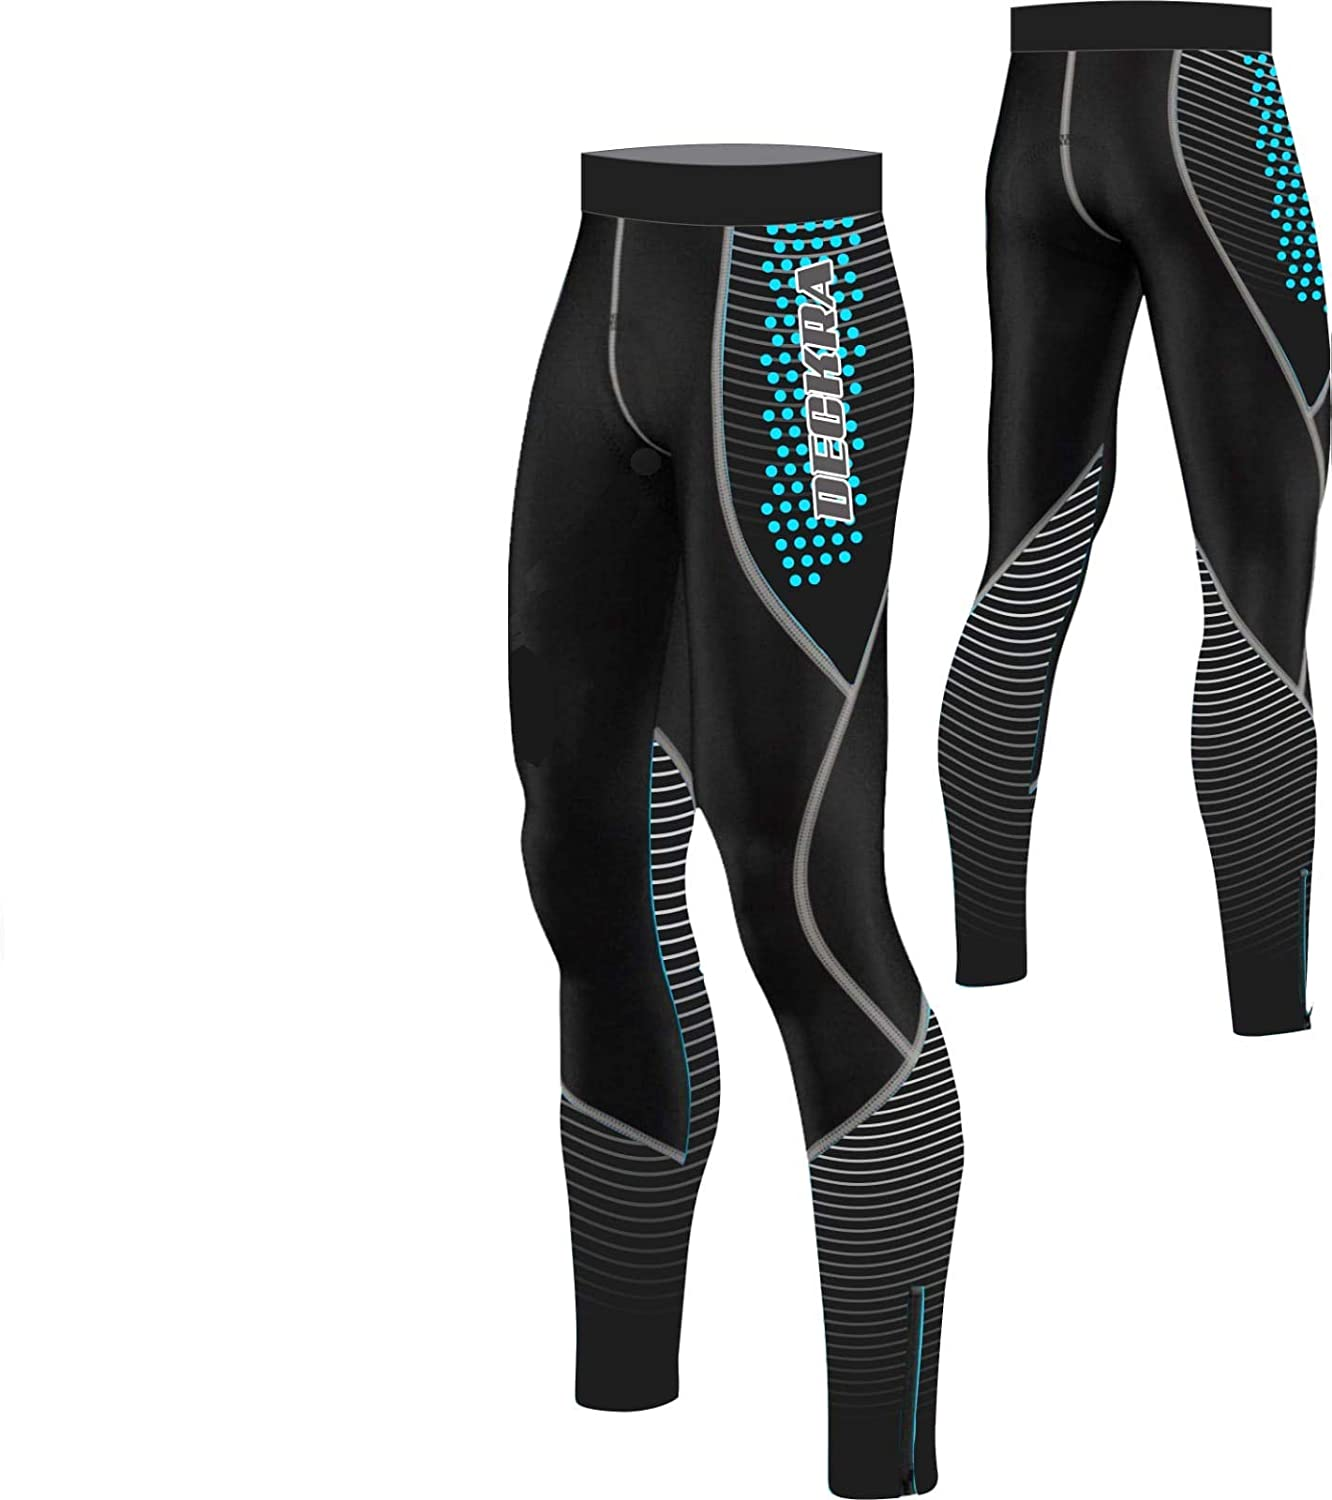 Men's Cycling Pants 3D Padded Road Bicycle Tights MTB Leggings Outdoor Thermal Biking Tights